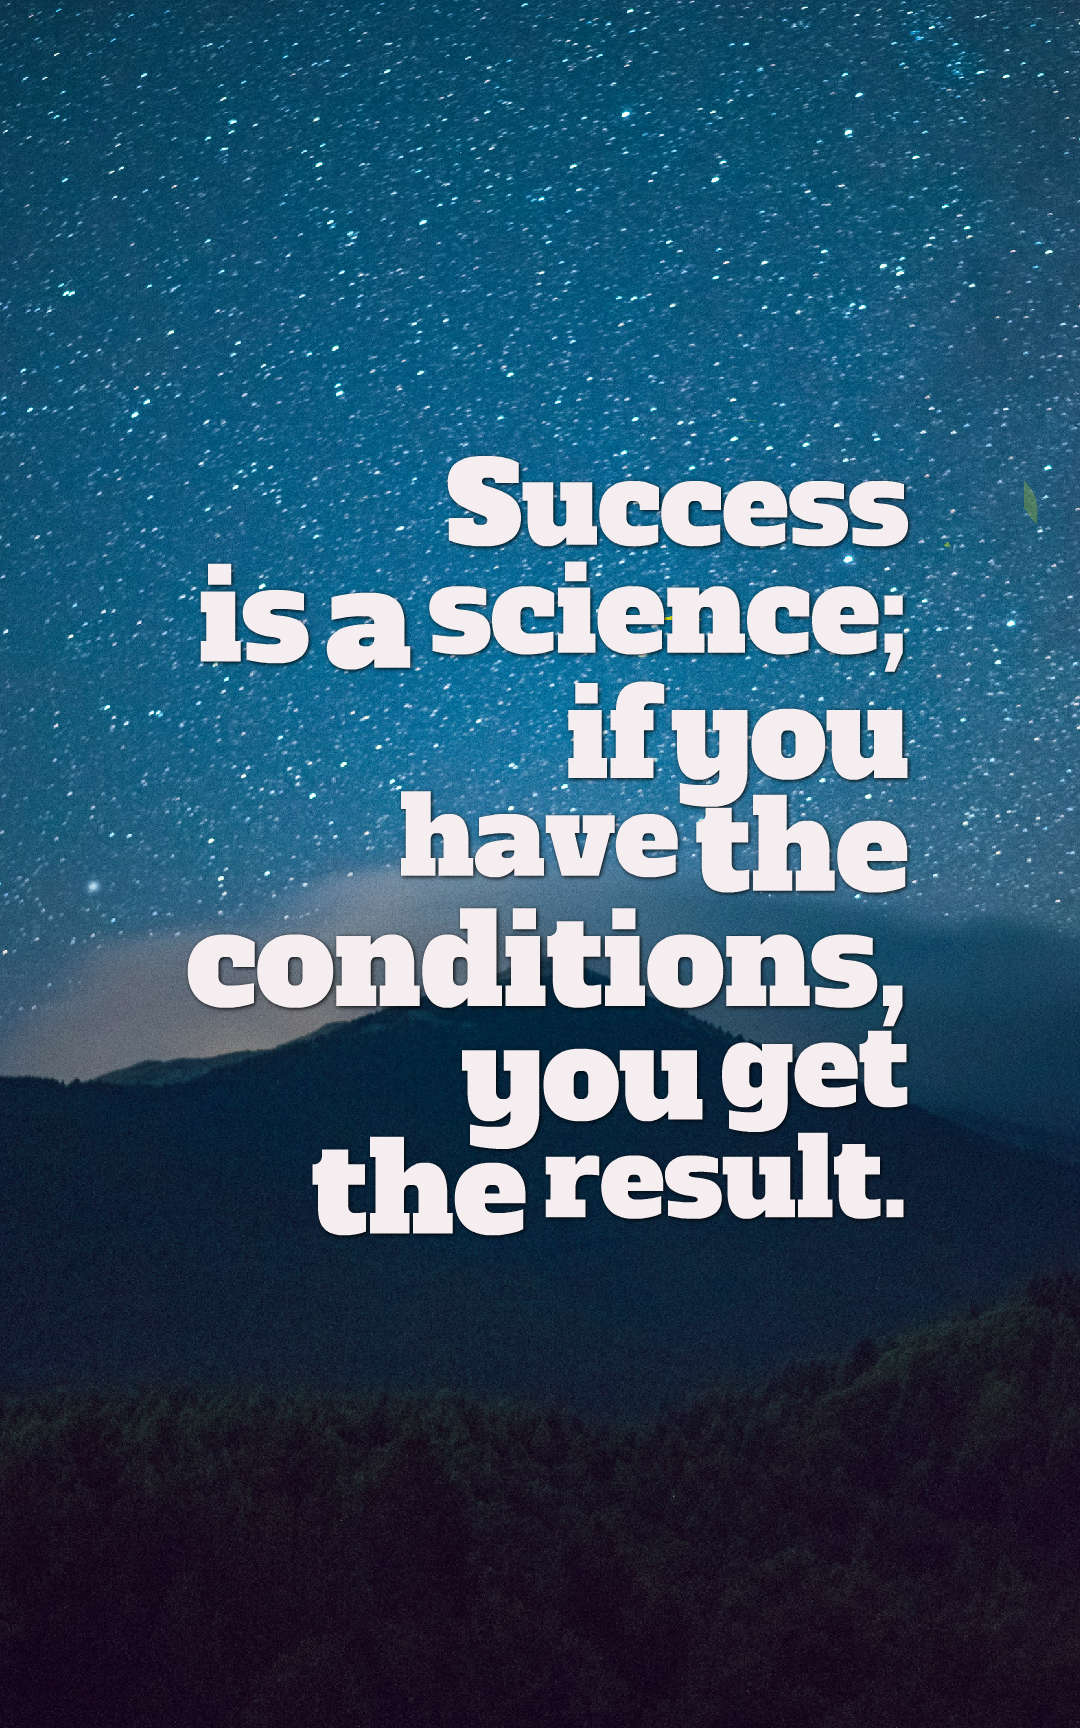 science success quotes oscar wilde result conditions according quote maker business quotescover